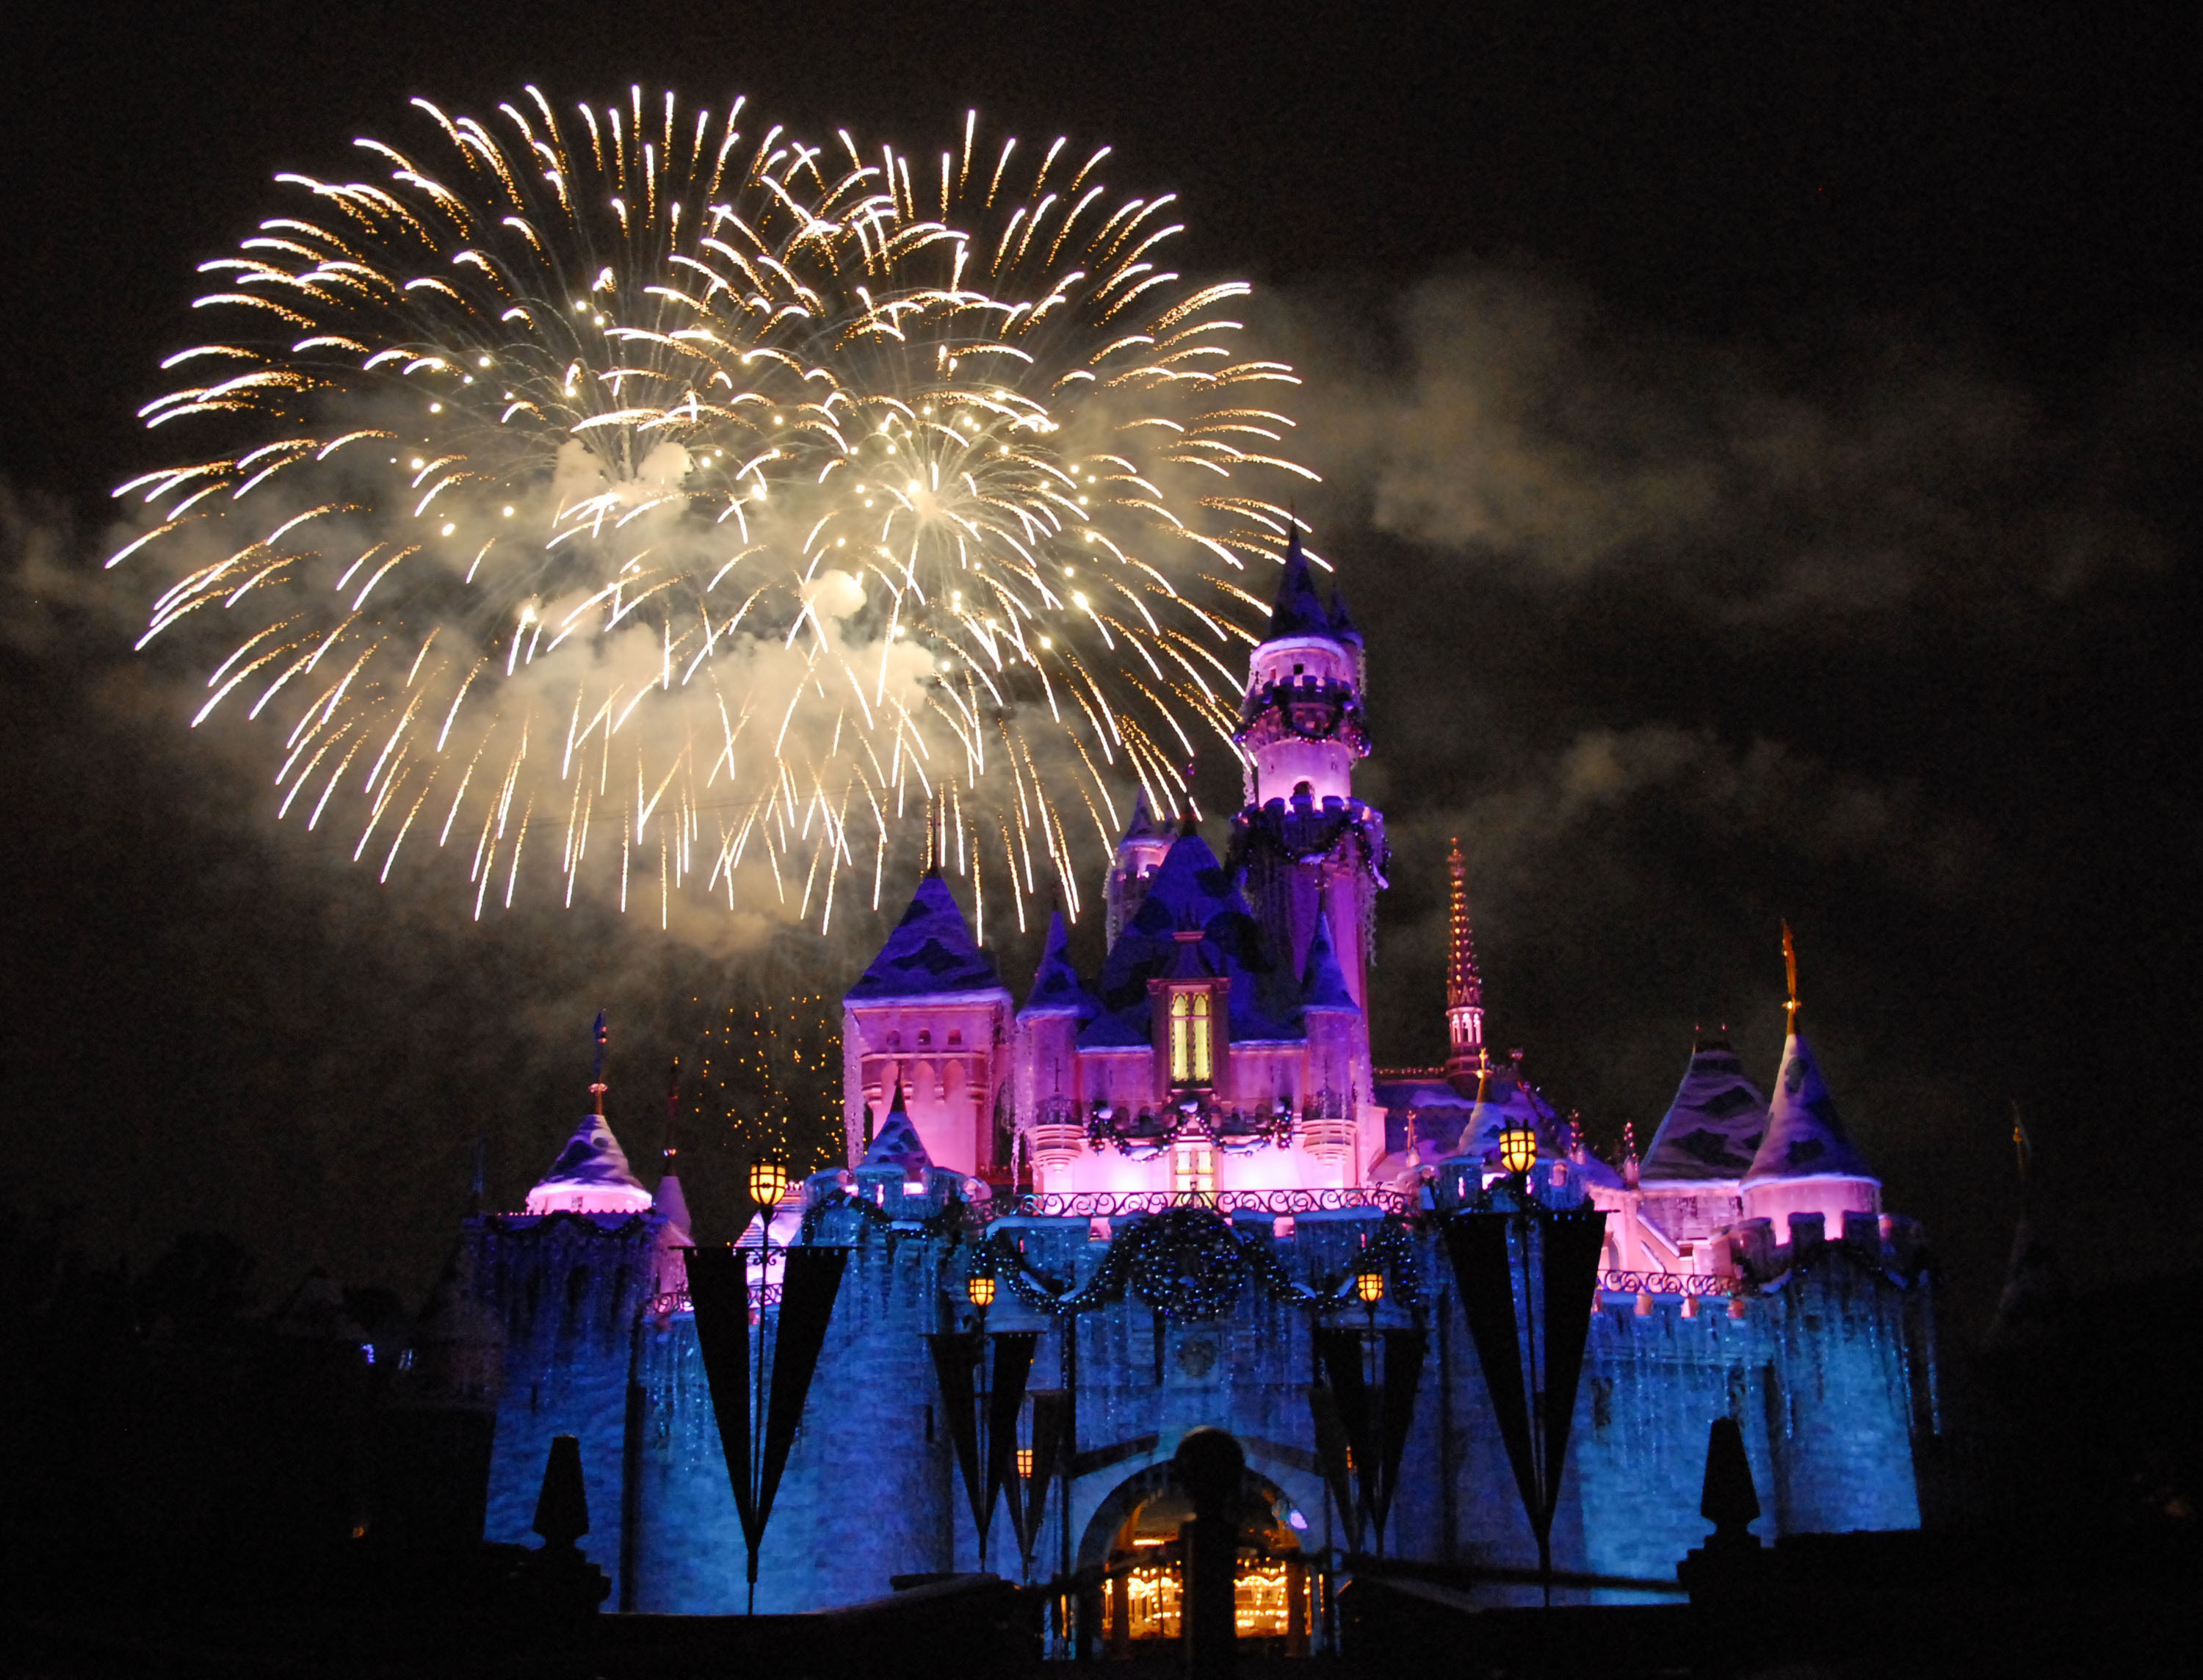 Hold up, is Disneyland doing away with its fireworks show?